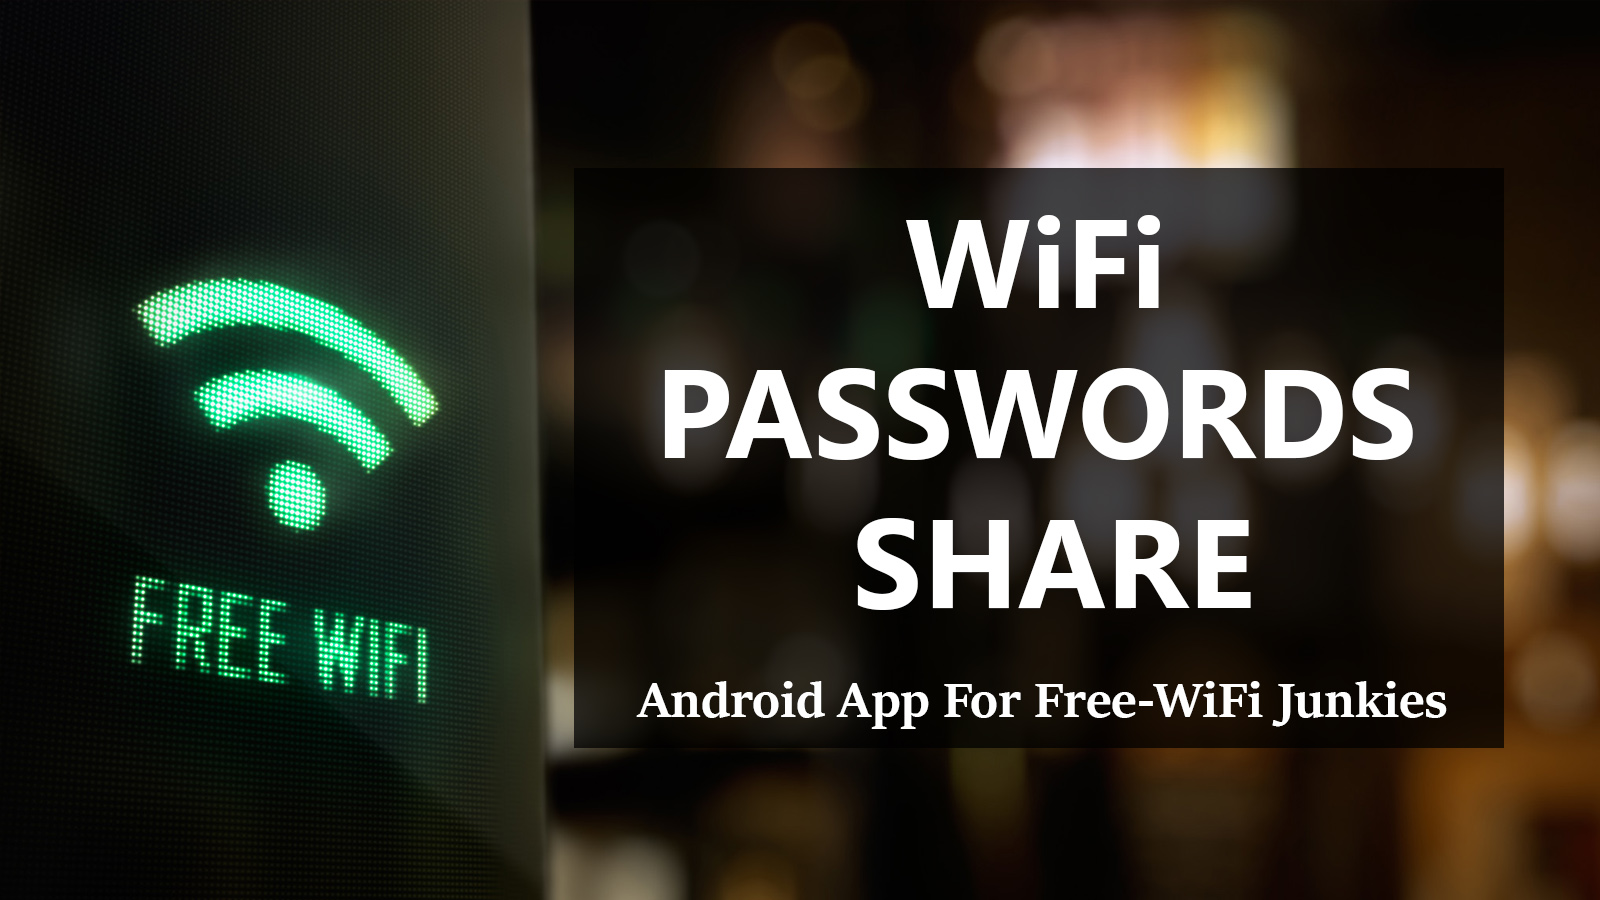 WiFi Passwords Share